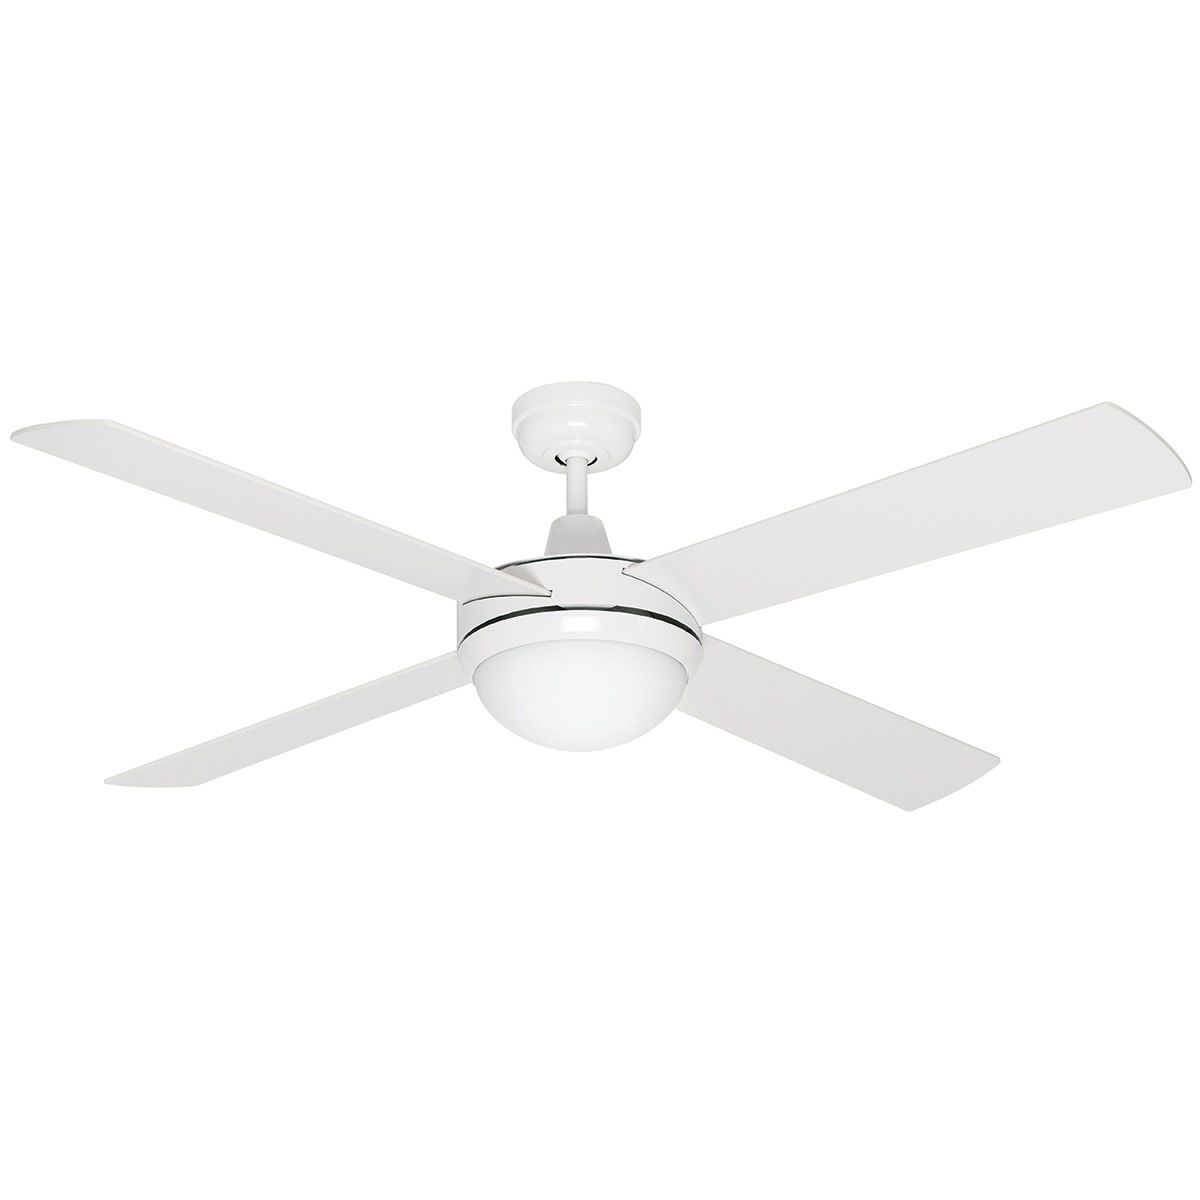 Ca Timber Ceiling Fan With Light 130cm 52